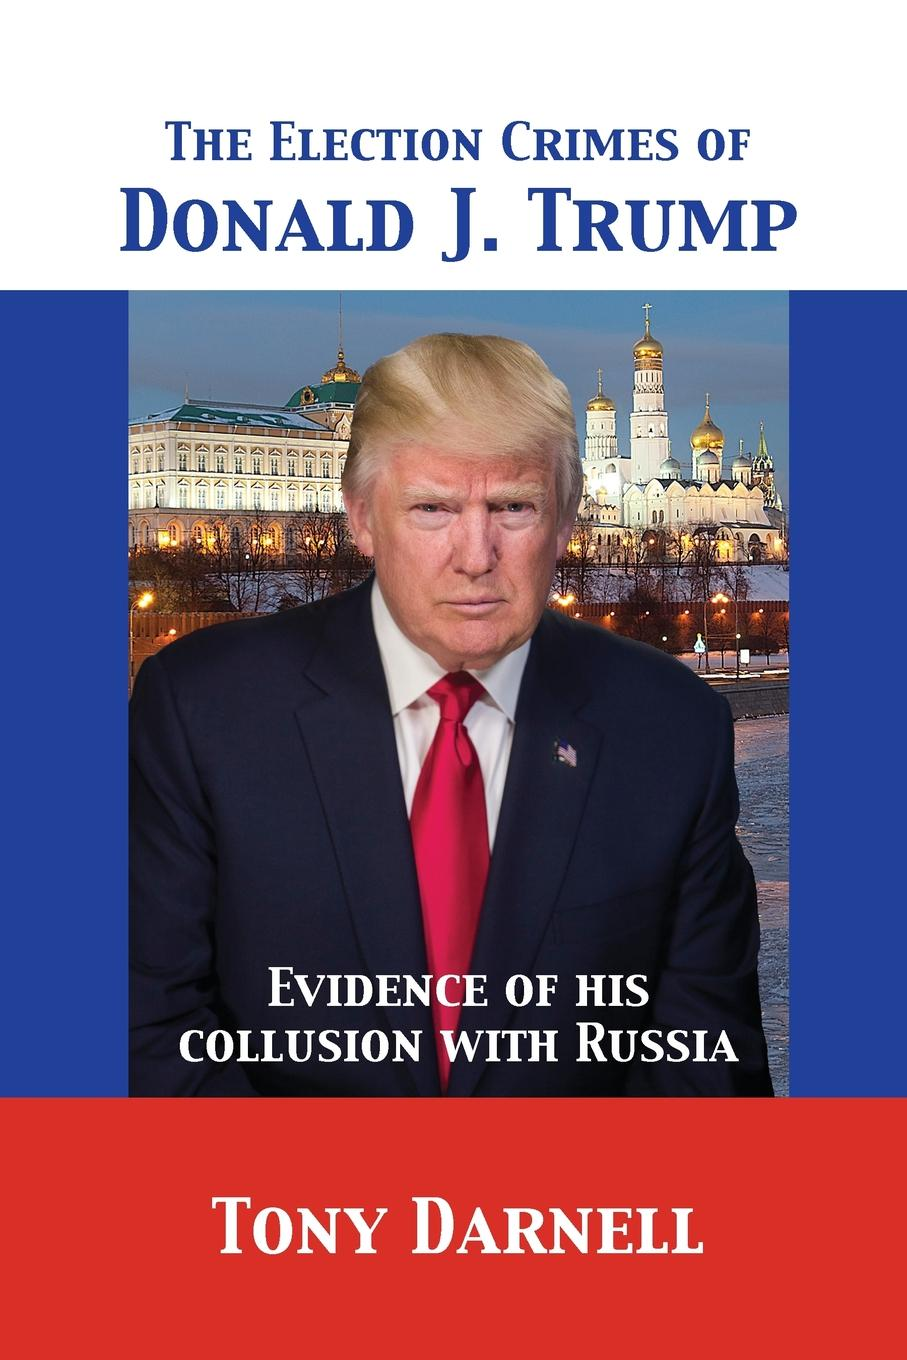 лучшая цена Tony Darnell The Election Crimes of Donald J. Trump. Evidence of his collusion with Russia